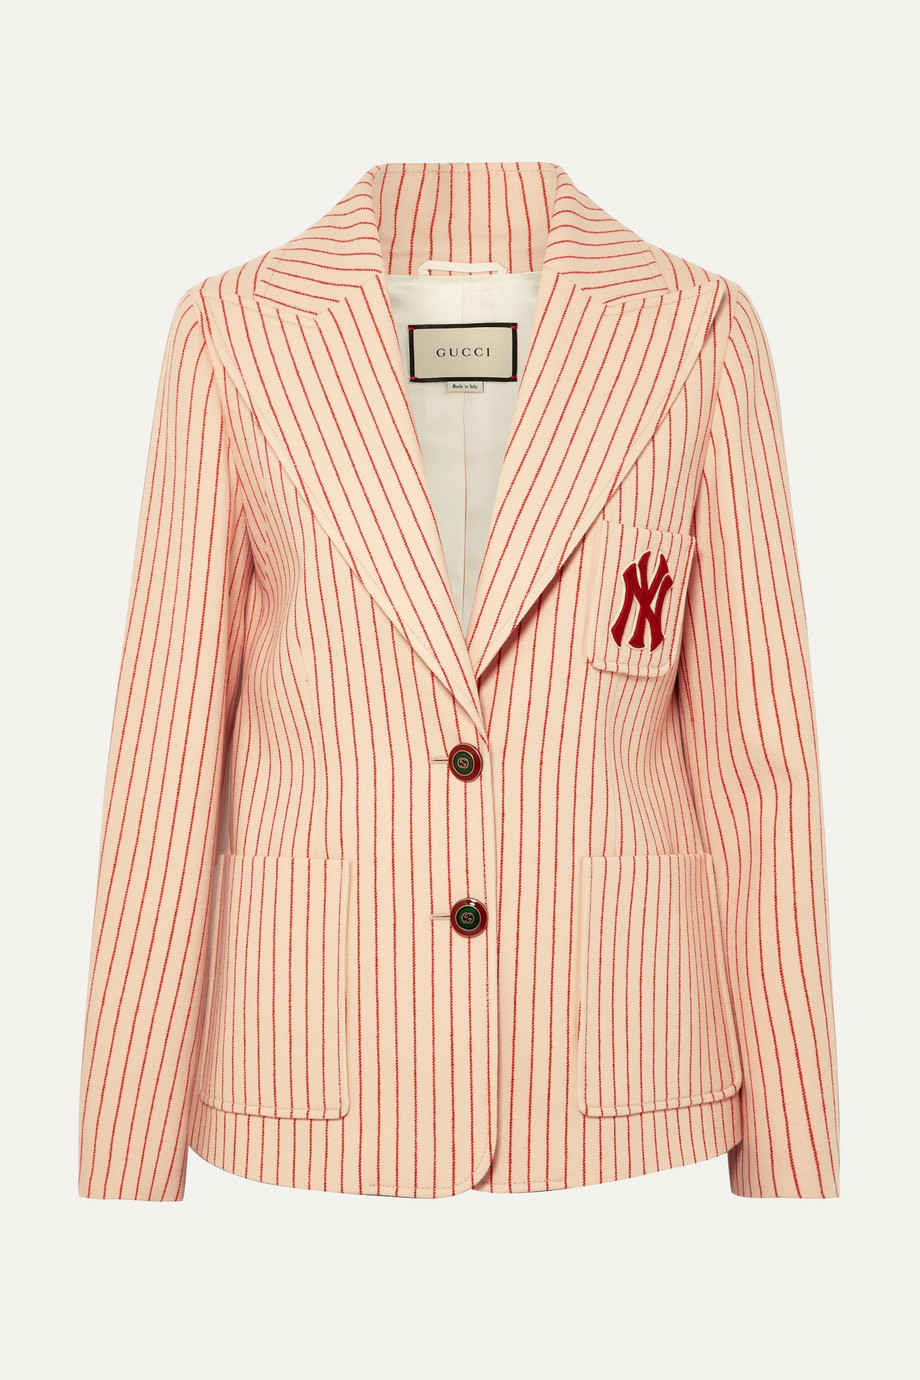 Gucci + New York Yankees embroidered striped wool blazer